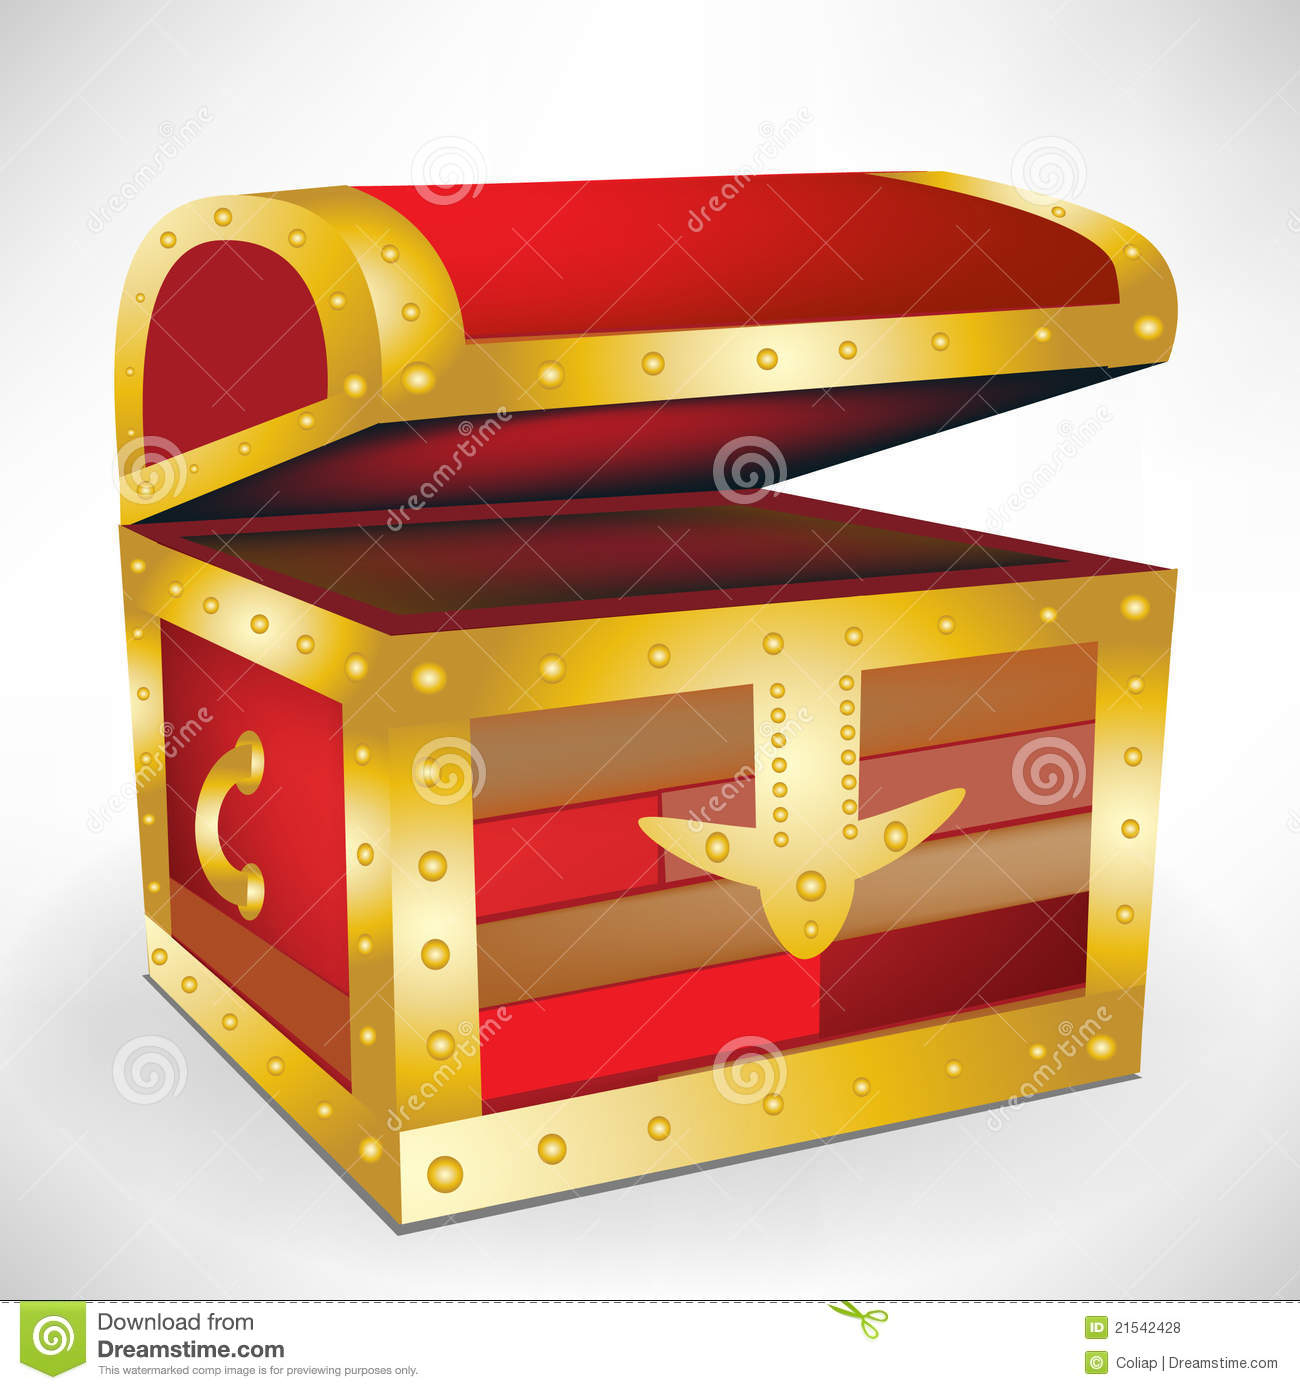 Open empty treasure chest stock vector. Illustration of pirate ...